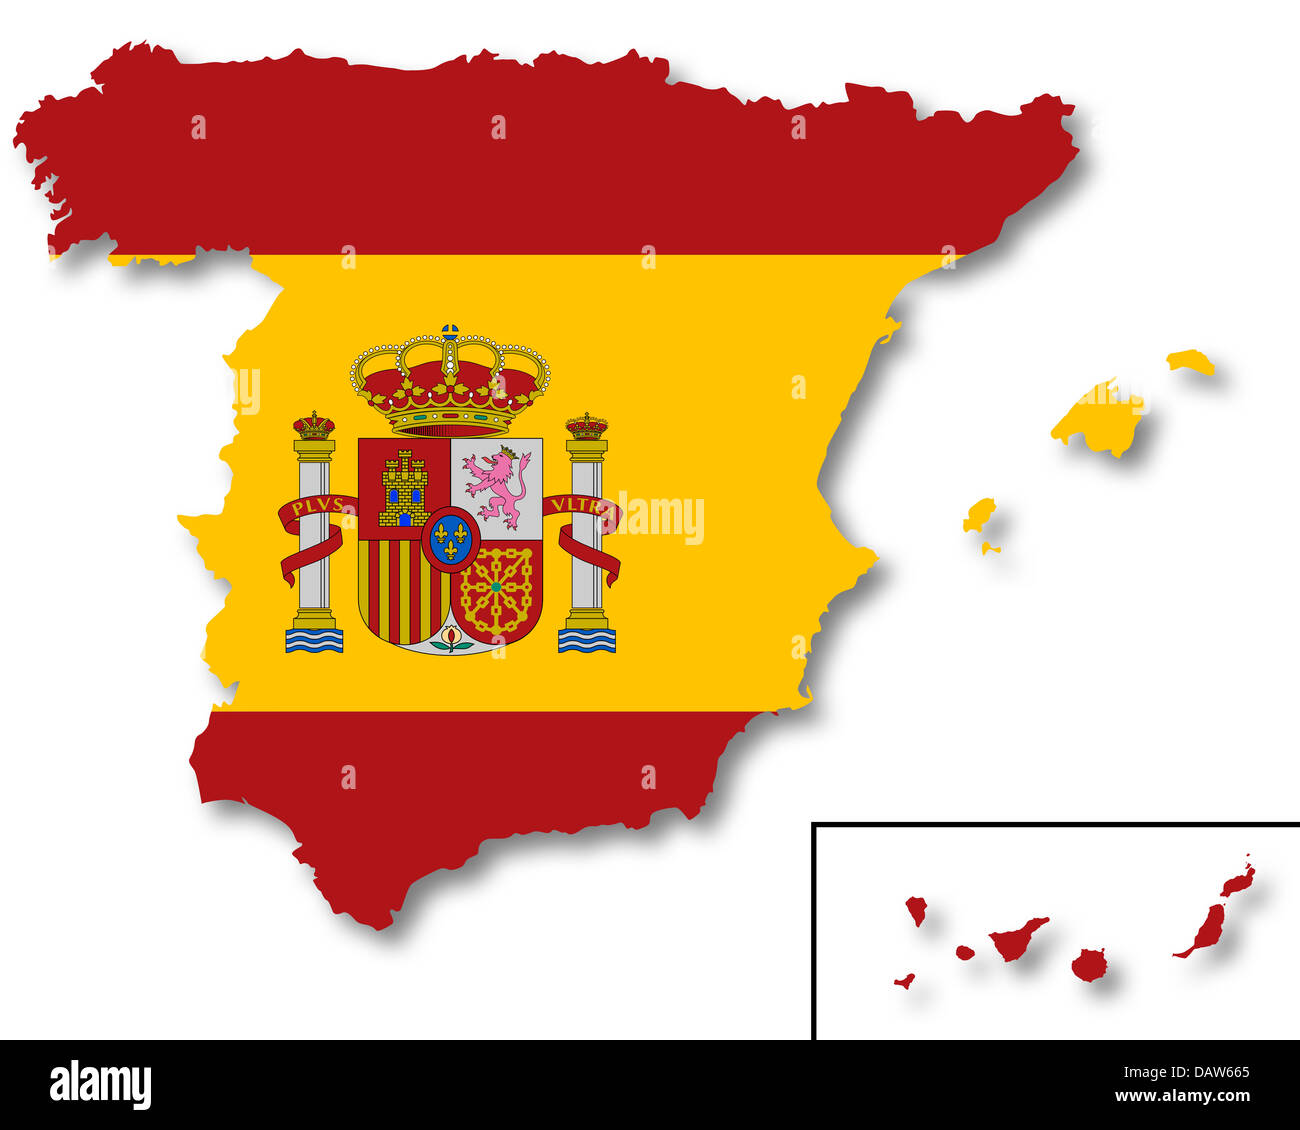 Map and flag of Spain - Stock Image